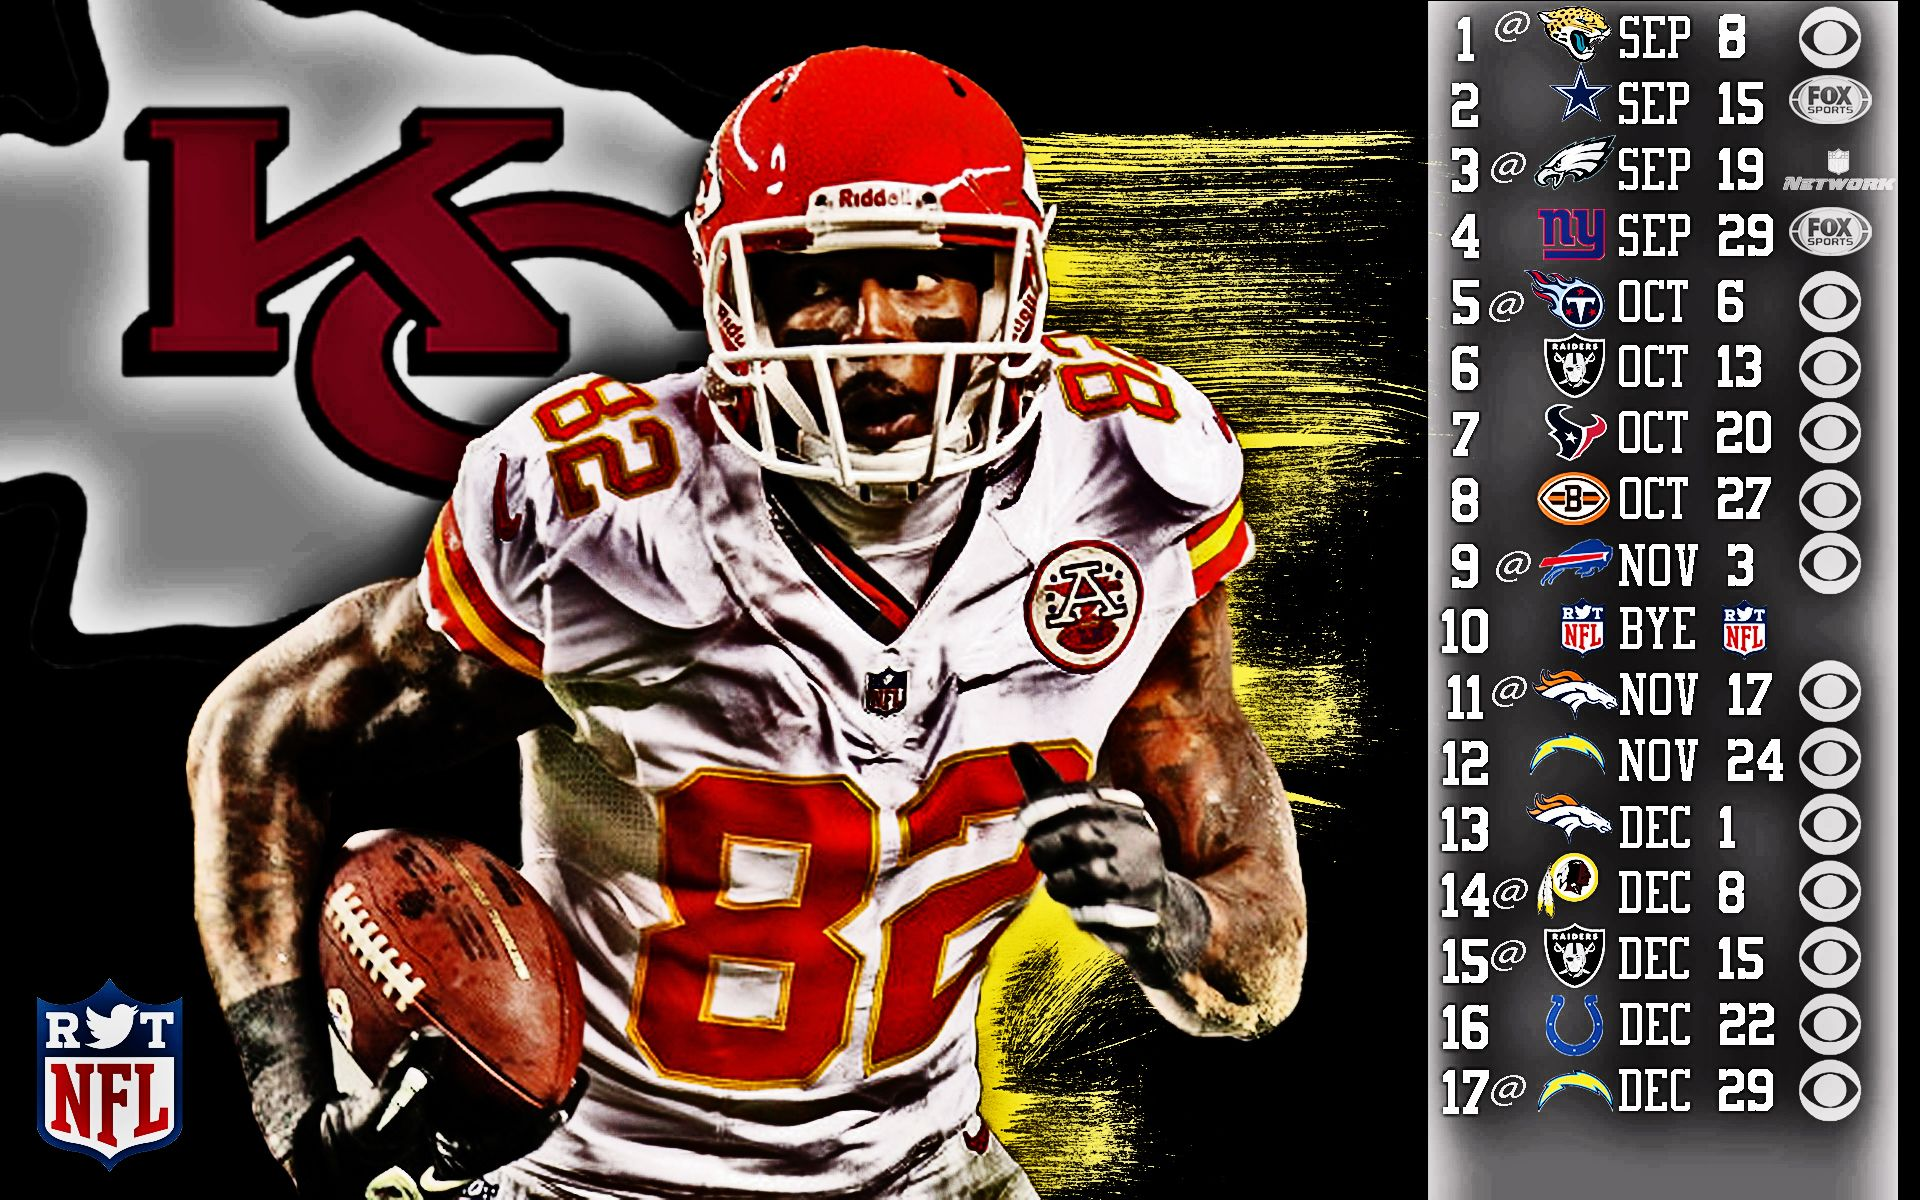 KC Chiefs Wallpaper 2013 Kansas City Chiefs football nfl